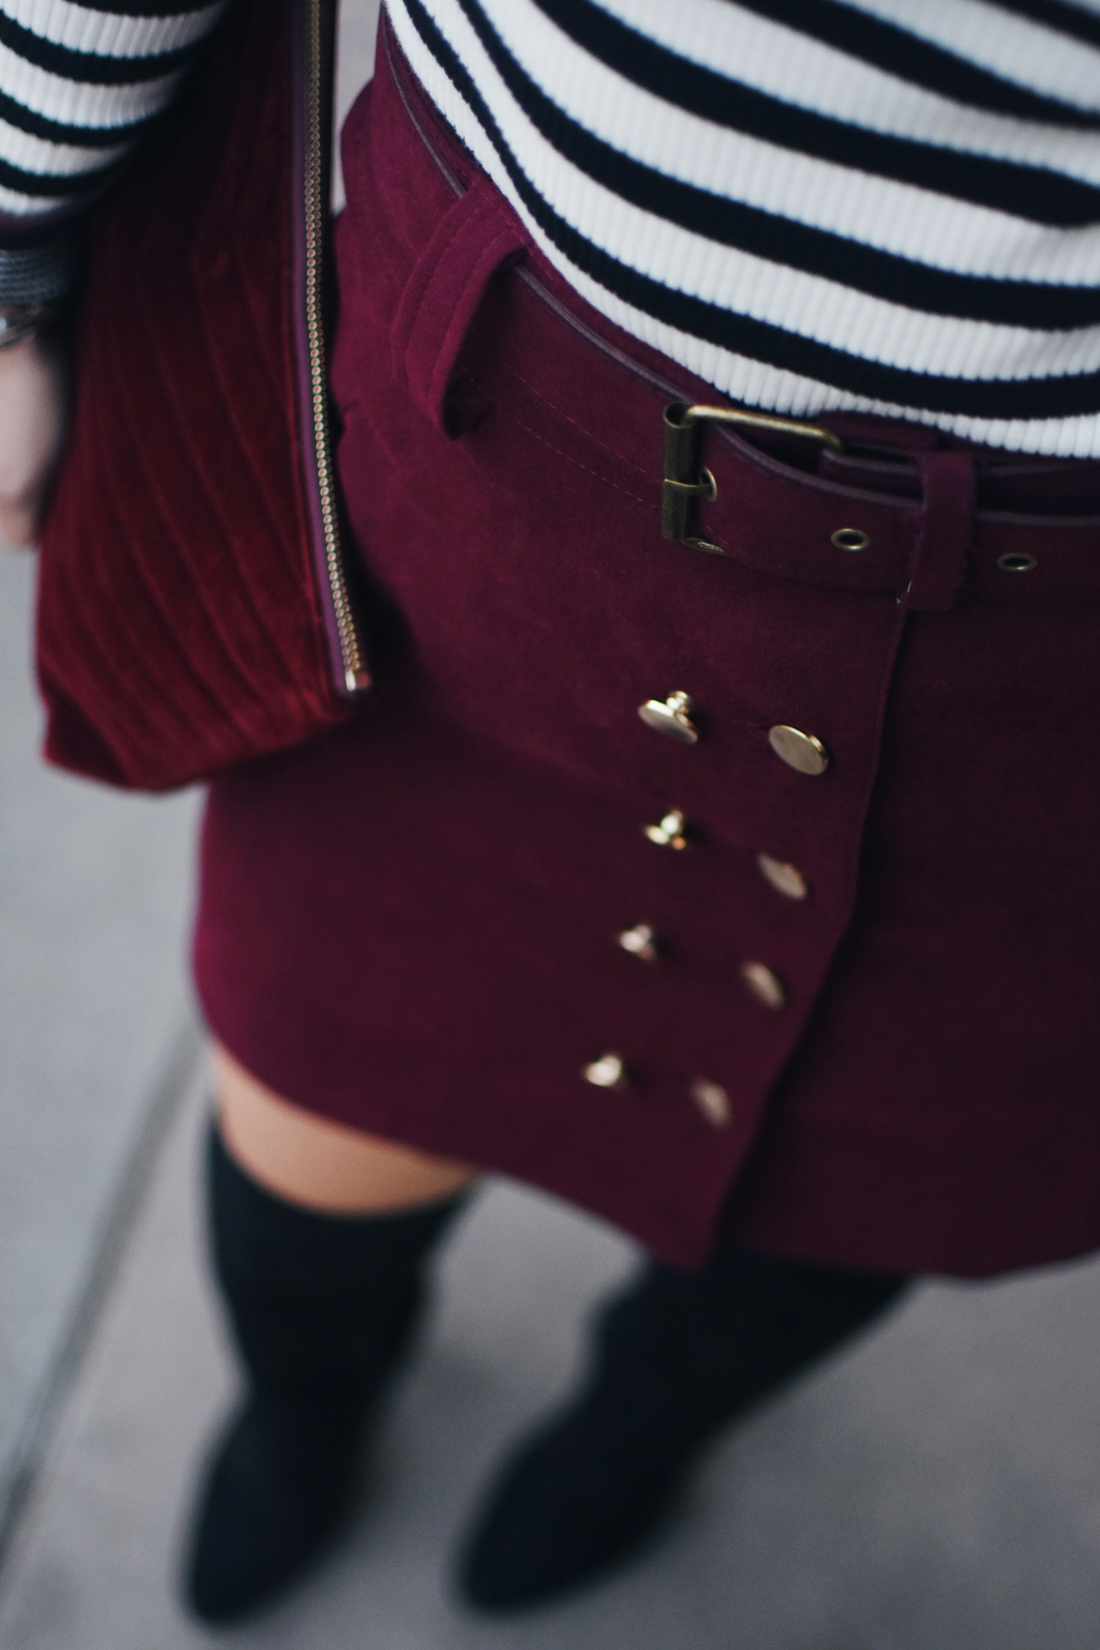 Carolina Hellal of Chic Talk wearing a SheIn burgundy mini skirt, Gap ribbed turtleneck sweater and black boots